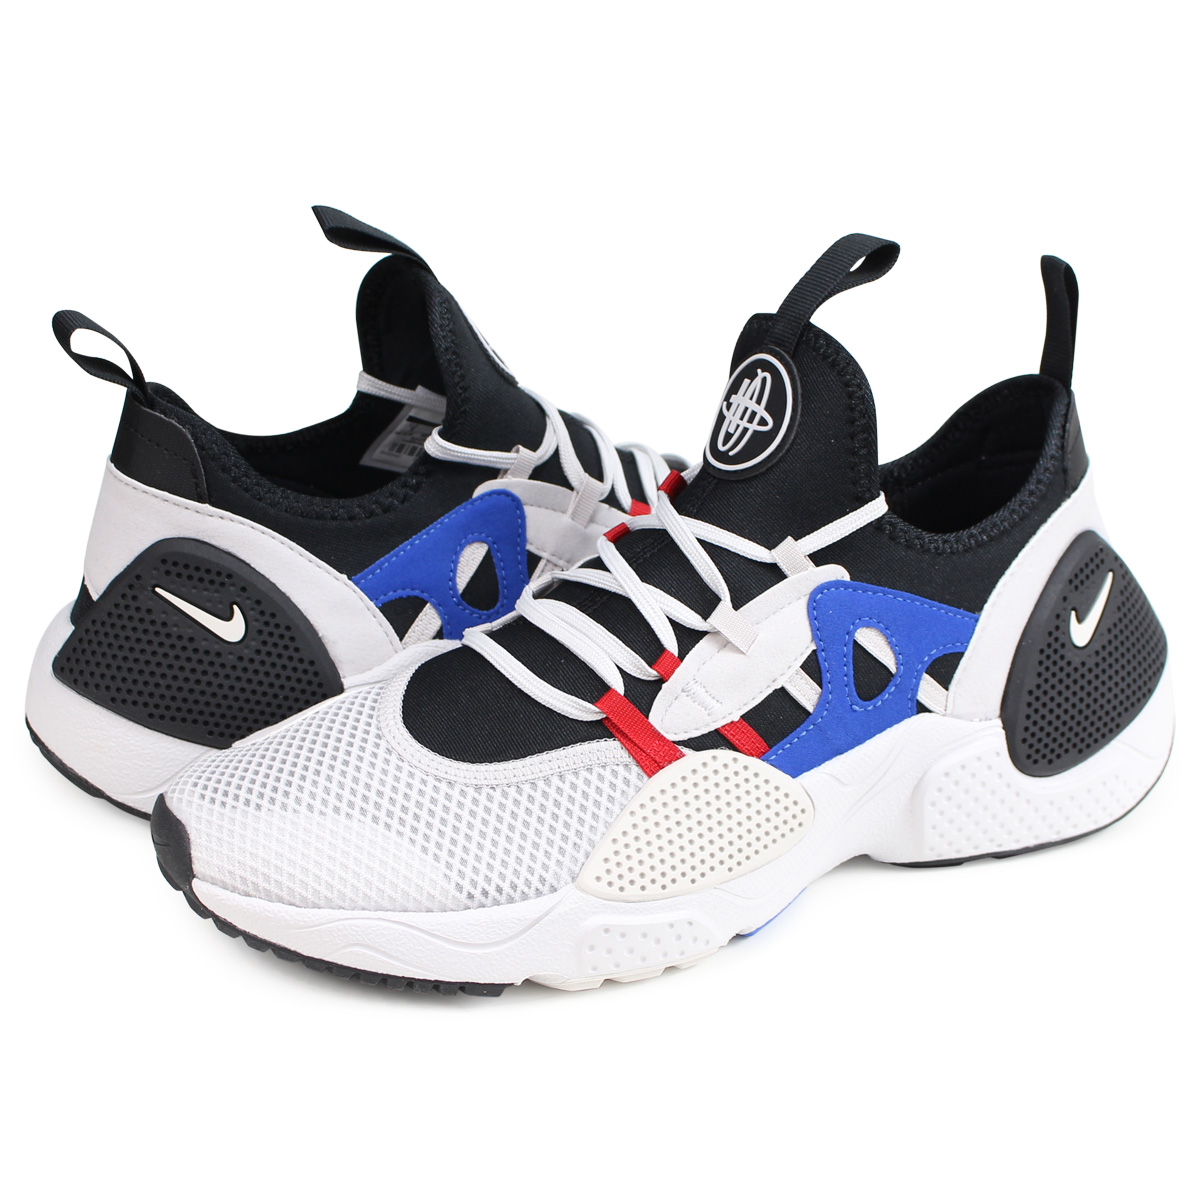 4ff3390cb6a4 Nike NIKE エアハラチスニーカーメンズ AIR HUARACHE NIKE HUARACHE E.D.G.E. TXT white  AO1697-001  load planned Shinnyu load in reservation product 2 14 ...